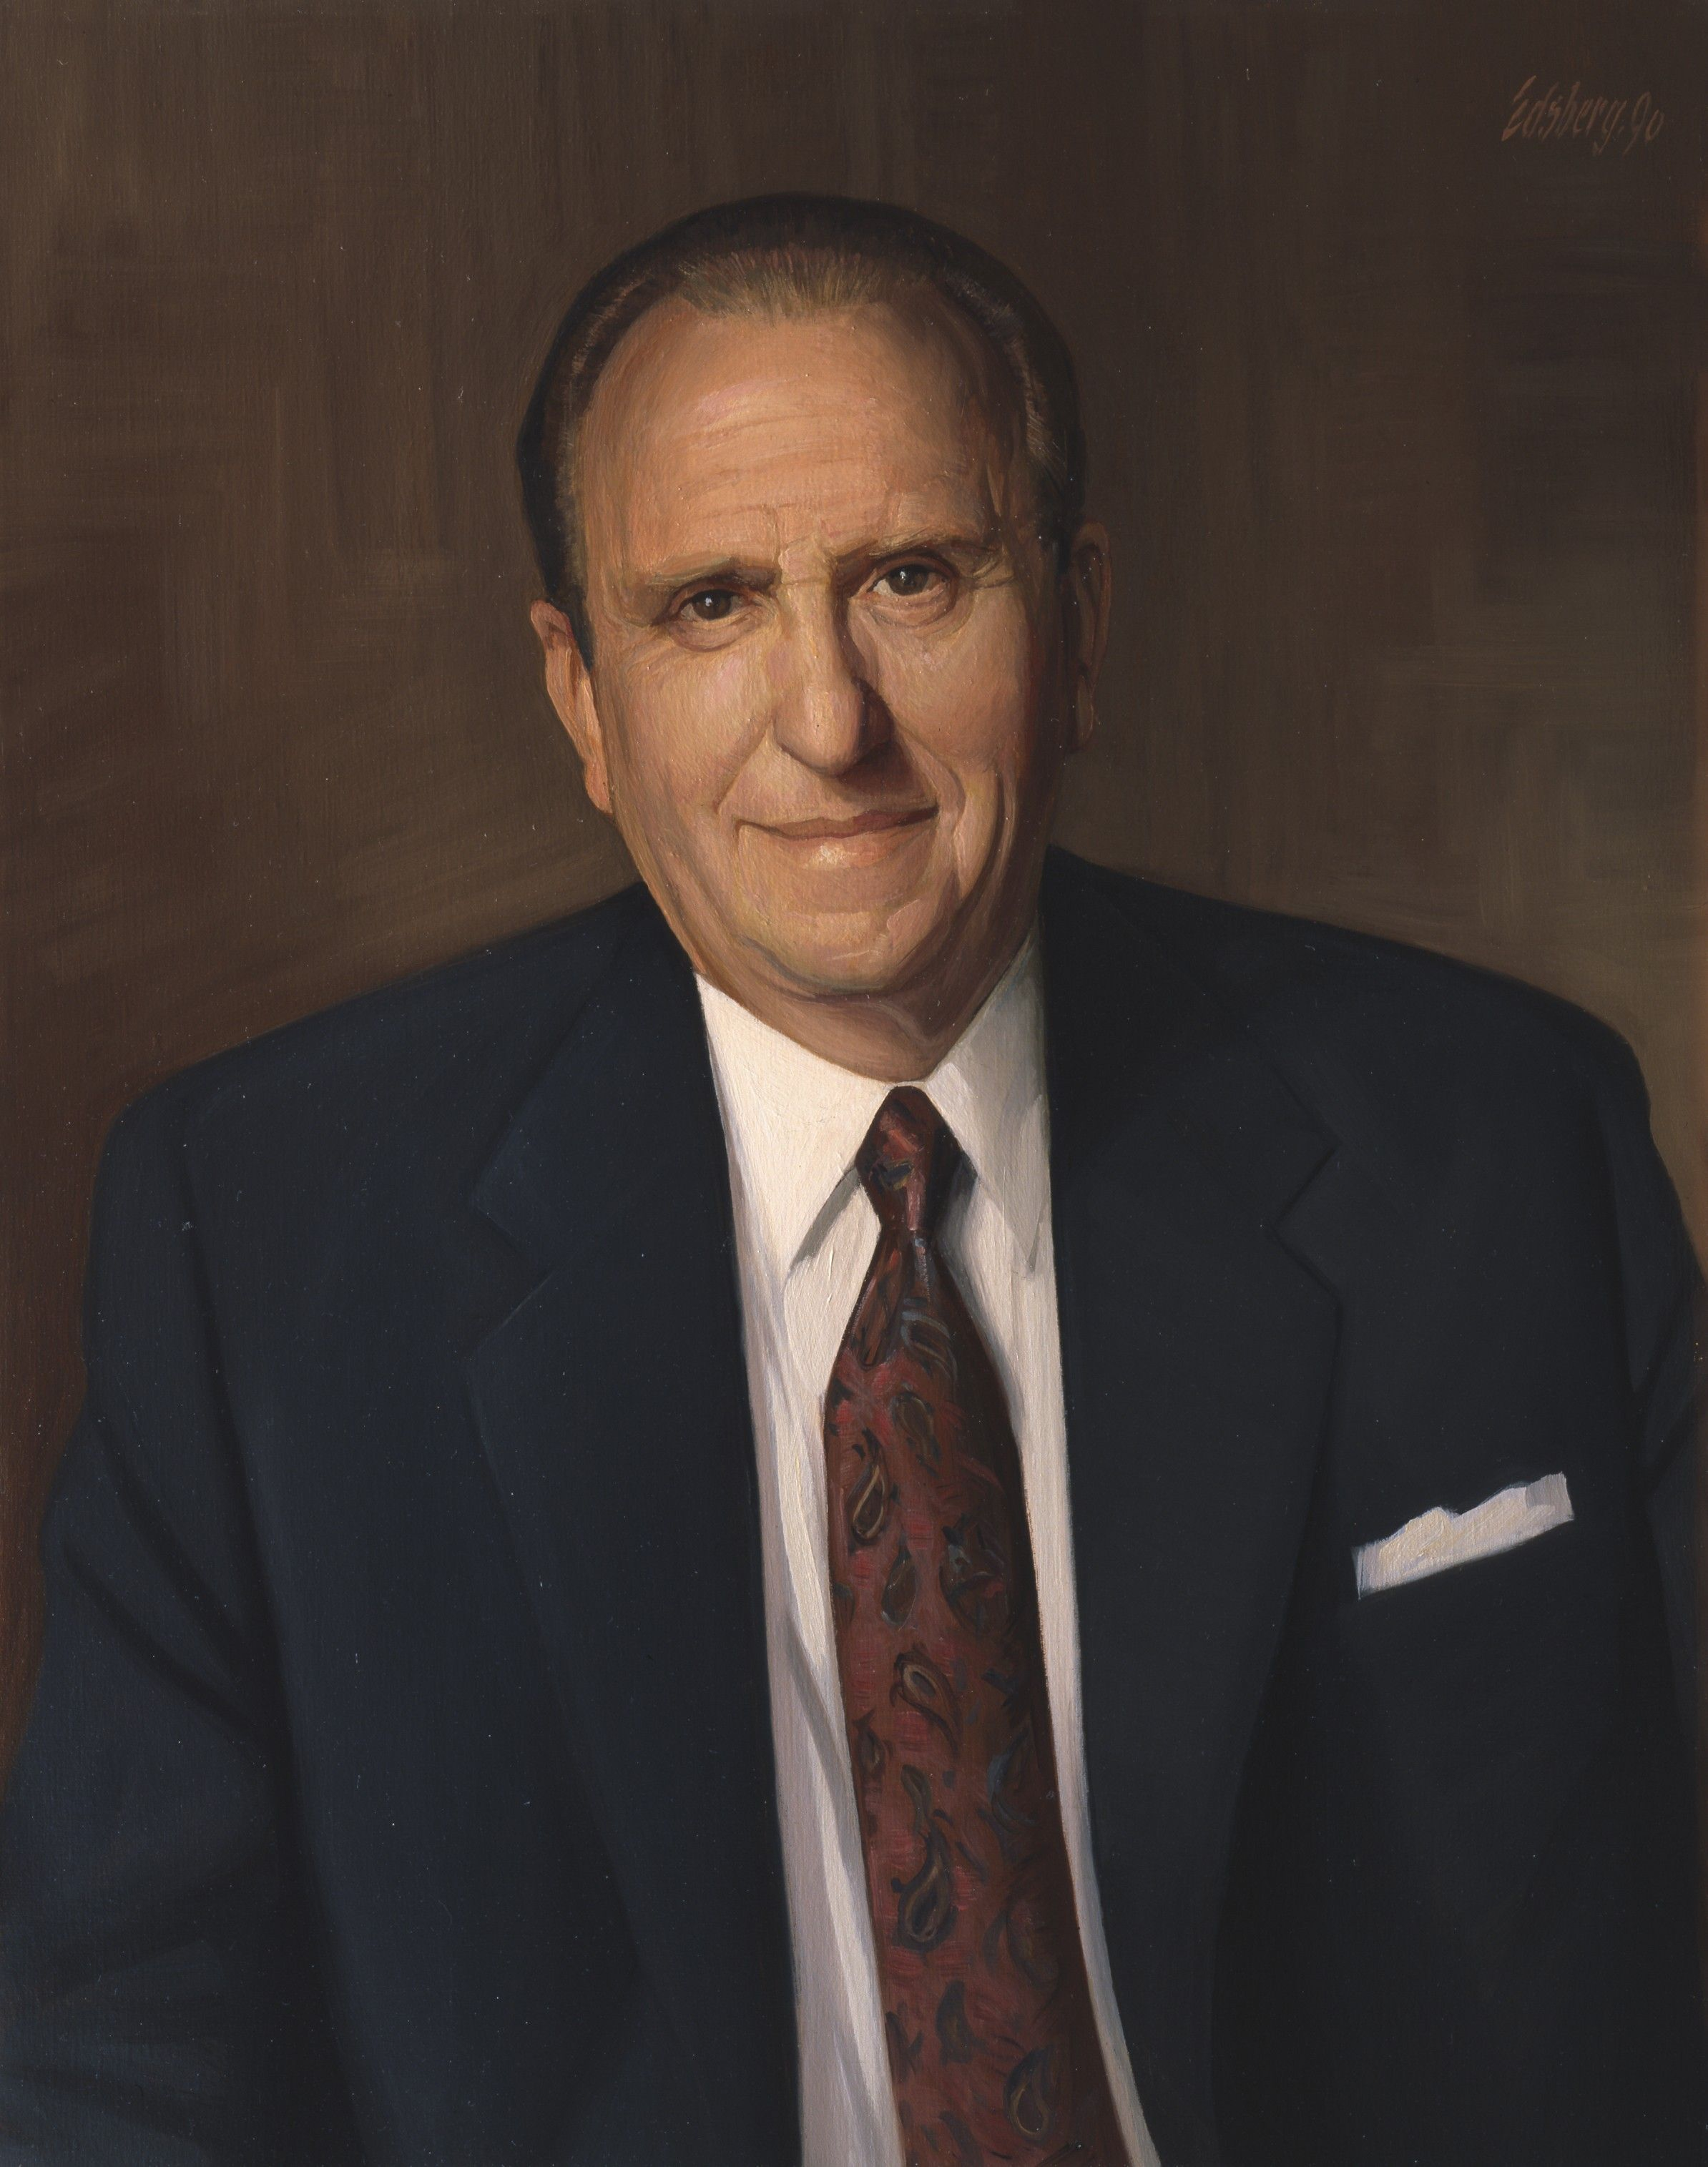 A portrait of Thomas S. Monson, who who was the 16th President of the Church from 2008 to 2018; painted by Knud Edsberg.